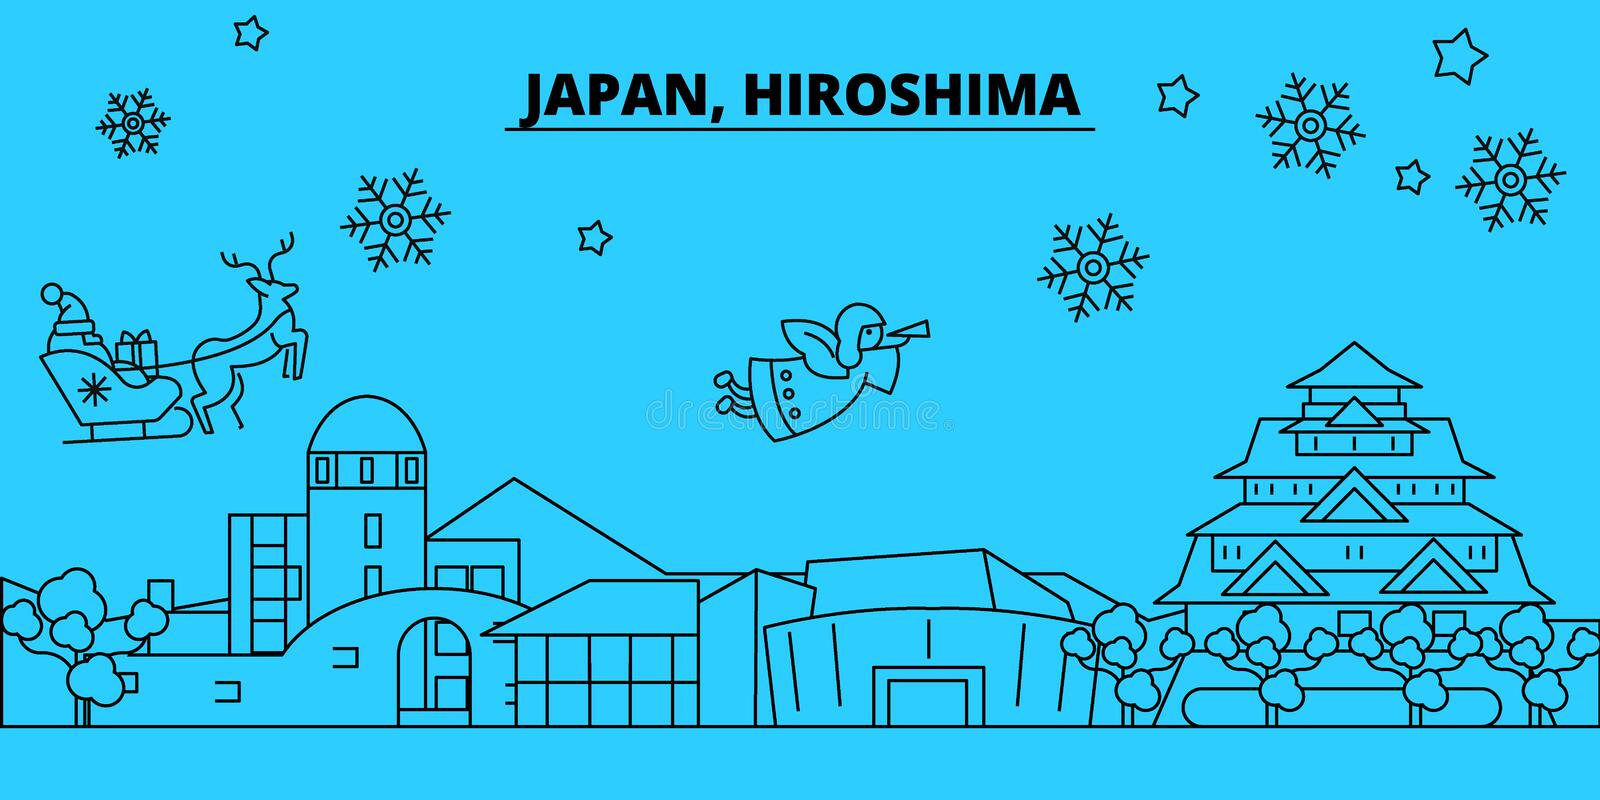 Japan, Hiroshima winter holidays skyline. Merry Christmas, Happy New Year decorated banner with Santa Claus.Japan. Japan, Hiroshima winter holidays skyline vector illustration